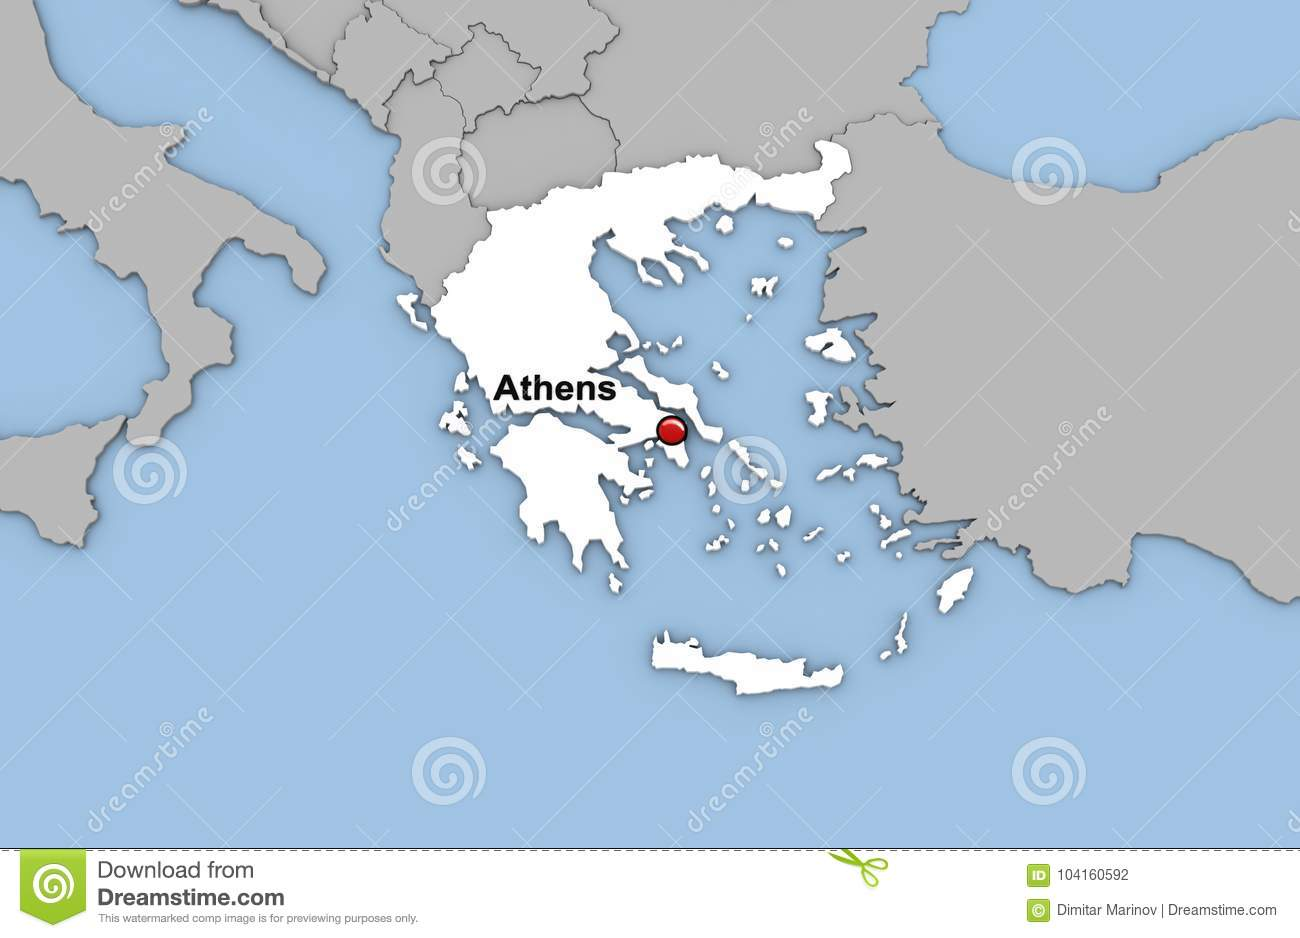 Abstract 3d render of map of greece stock illustration download abstract 3d render of map of greece stock illustration illustration of color illustration gumiabroncs Choice Image